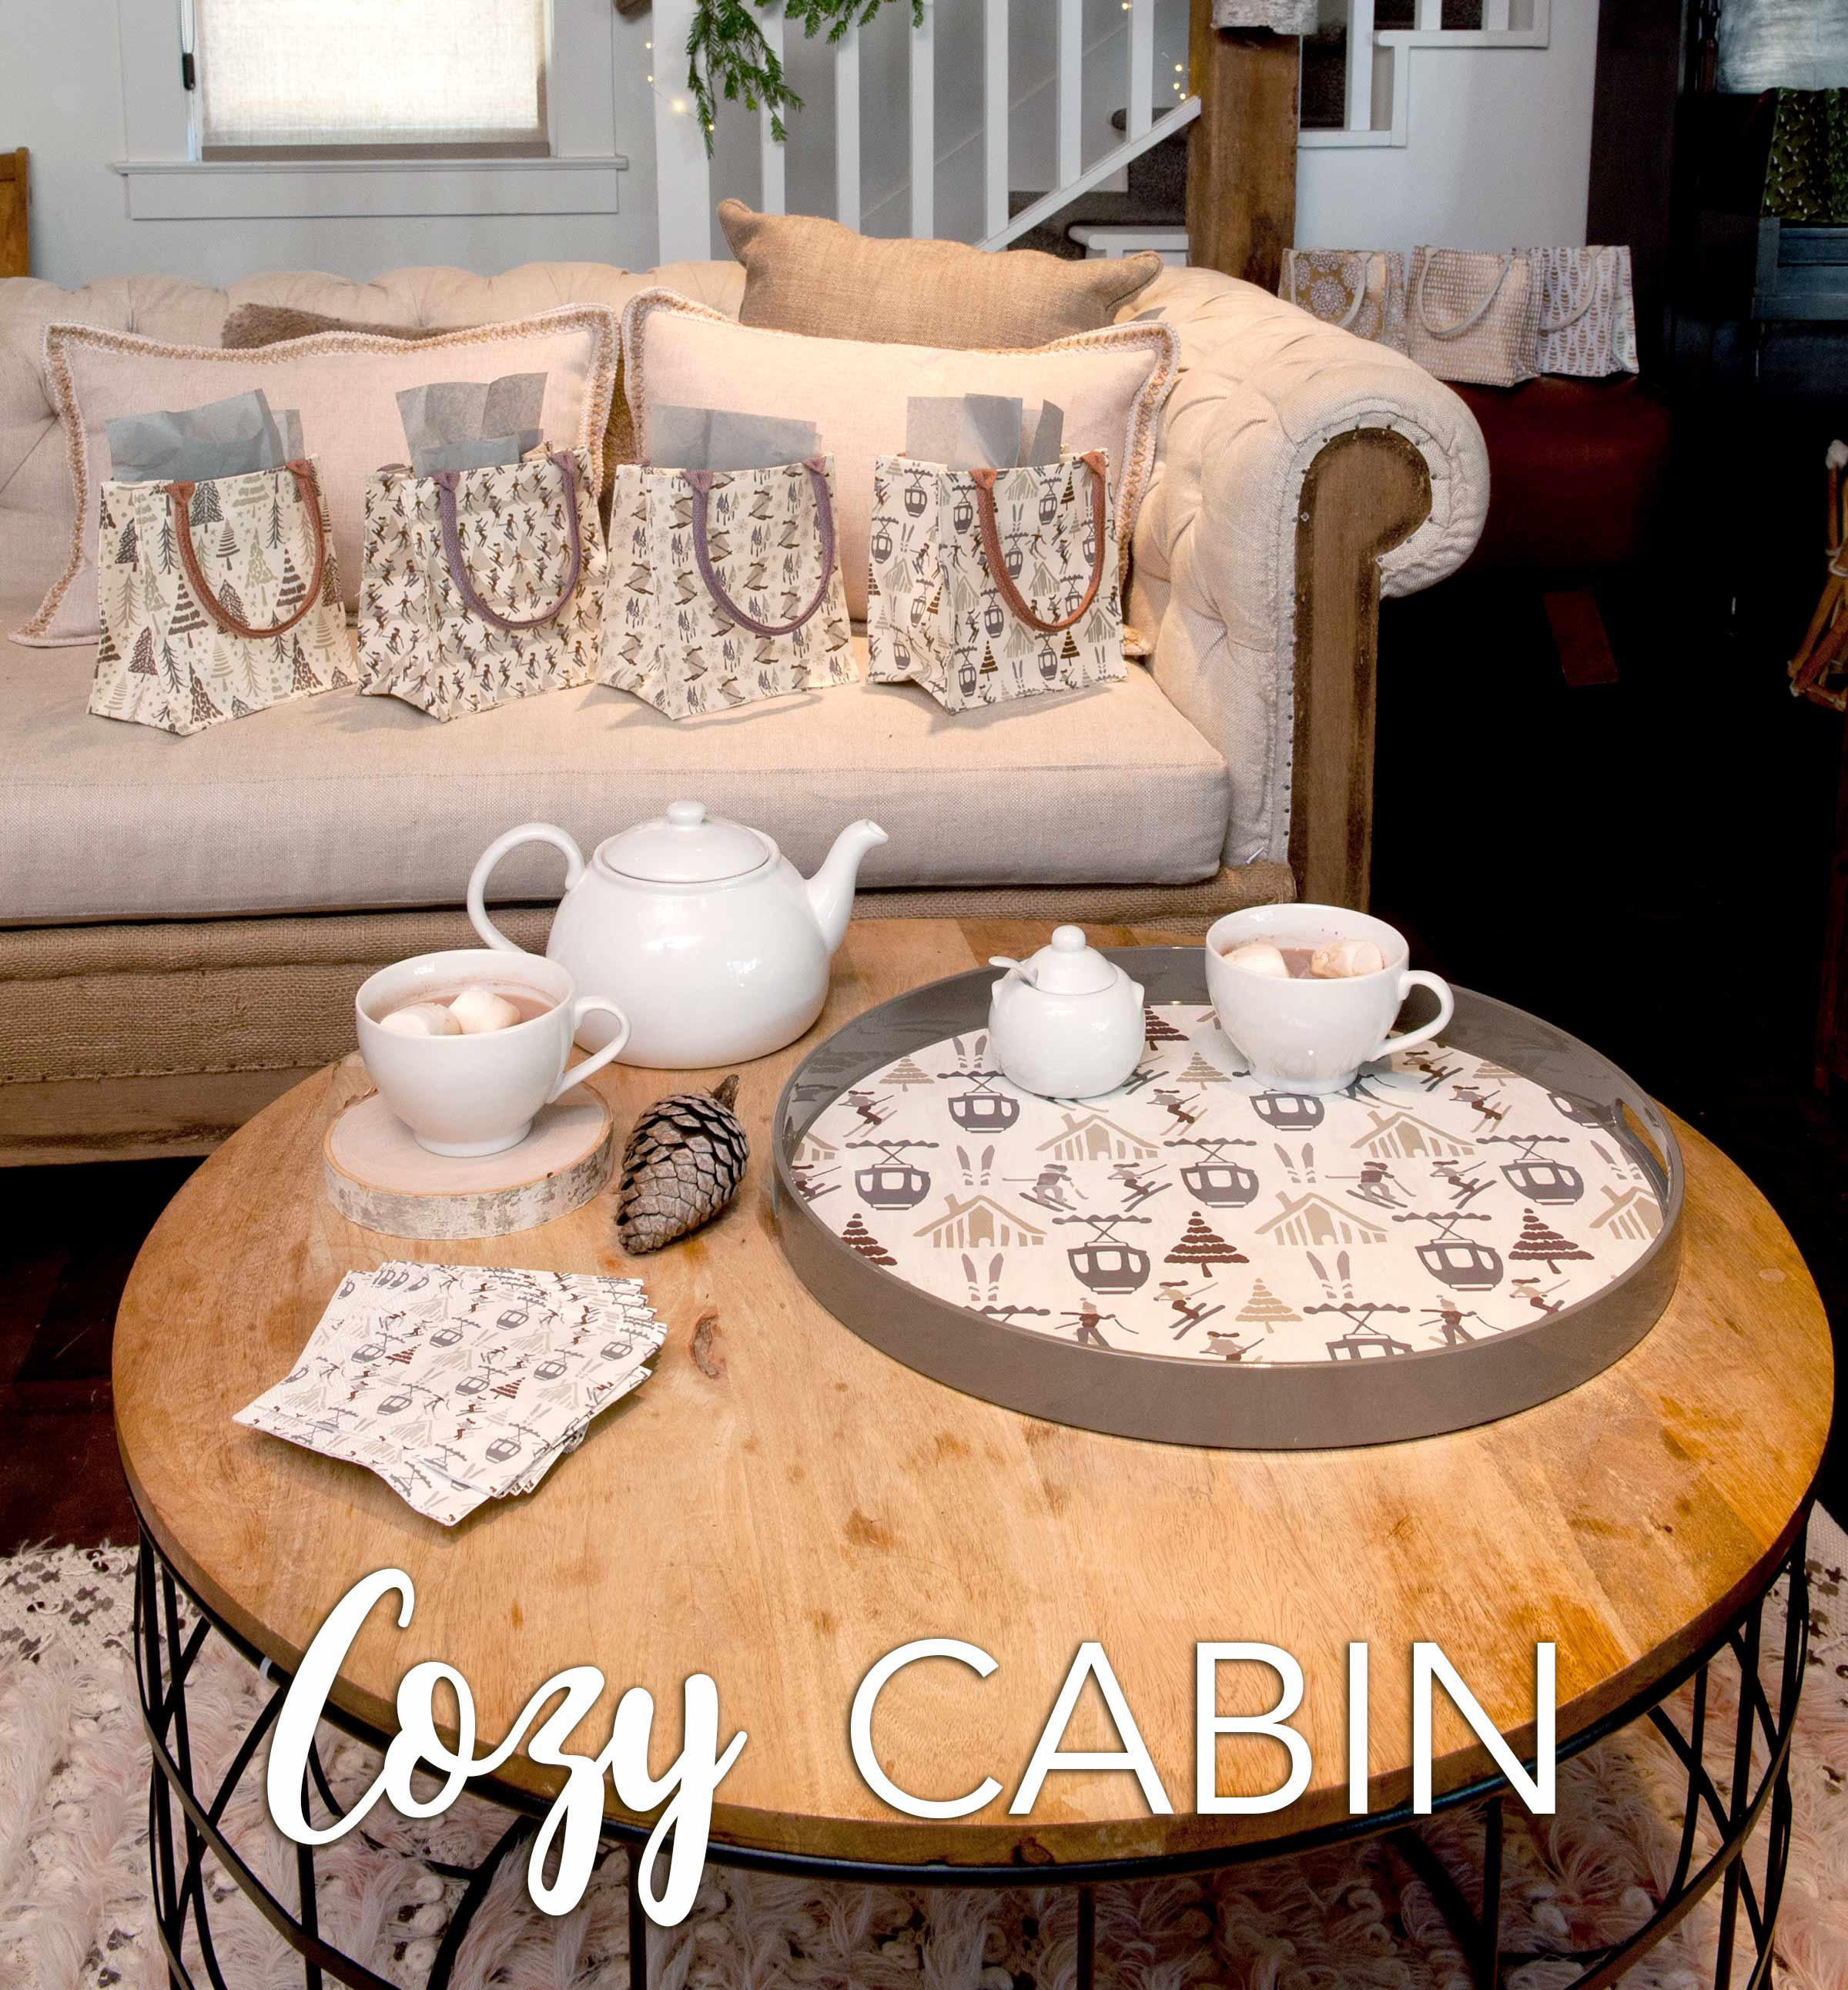 cozy cabin decor incl. ski-themed serving tray, coasters, napkins and gift bags